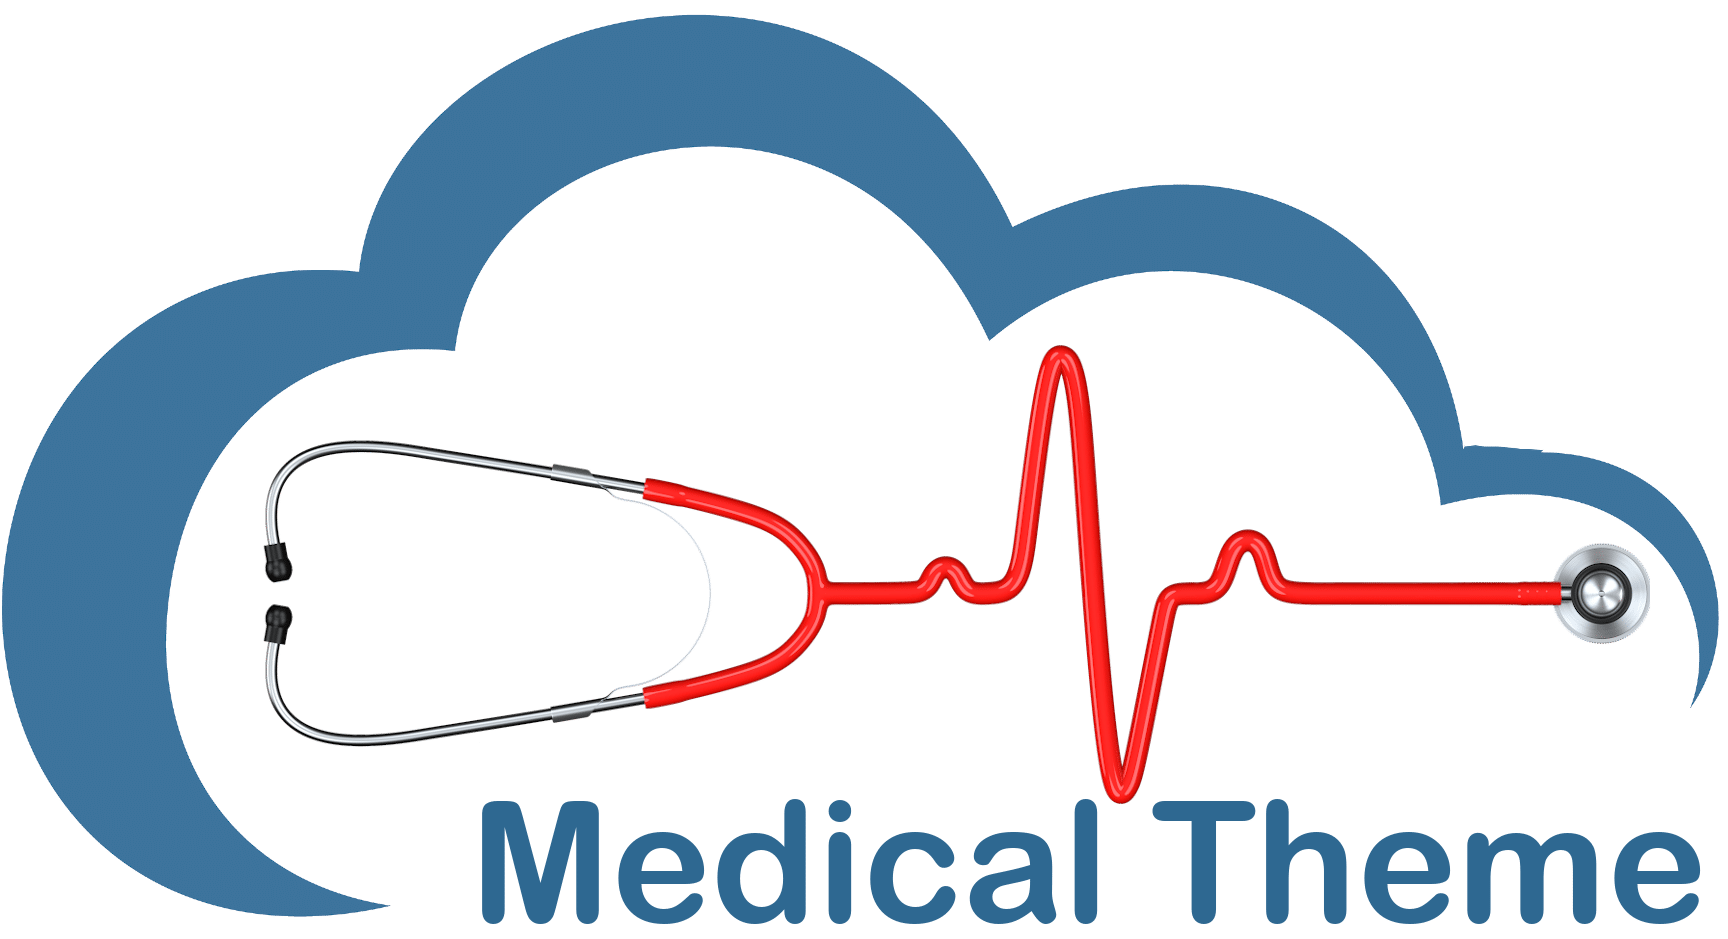 Medical Theme Blue Cloud Red Image